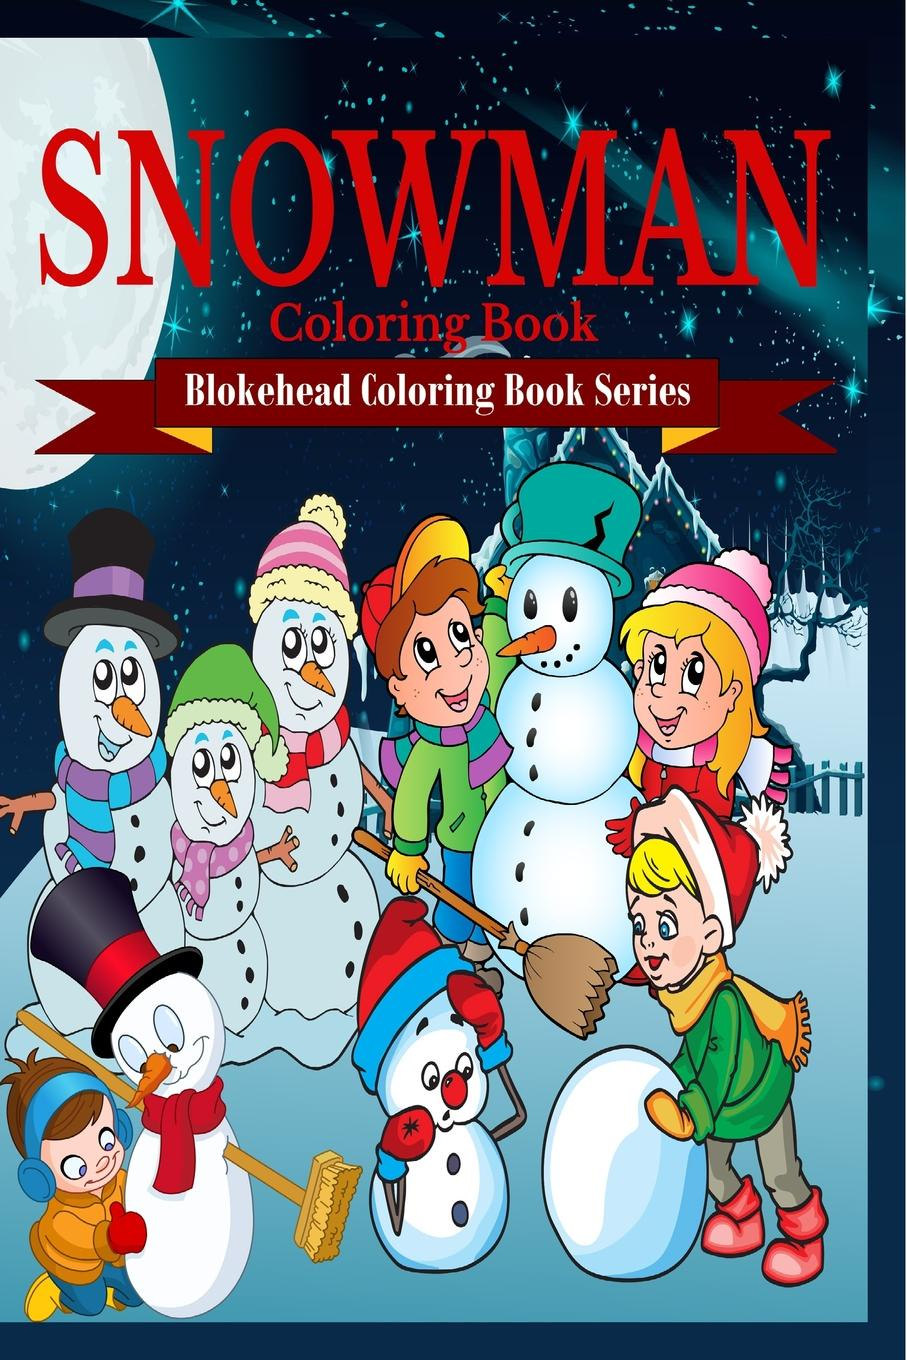 The Blokehead Snowman Coloring Book sandra staines crazy maze coloring book